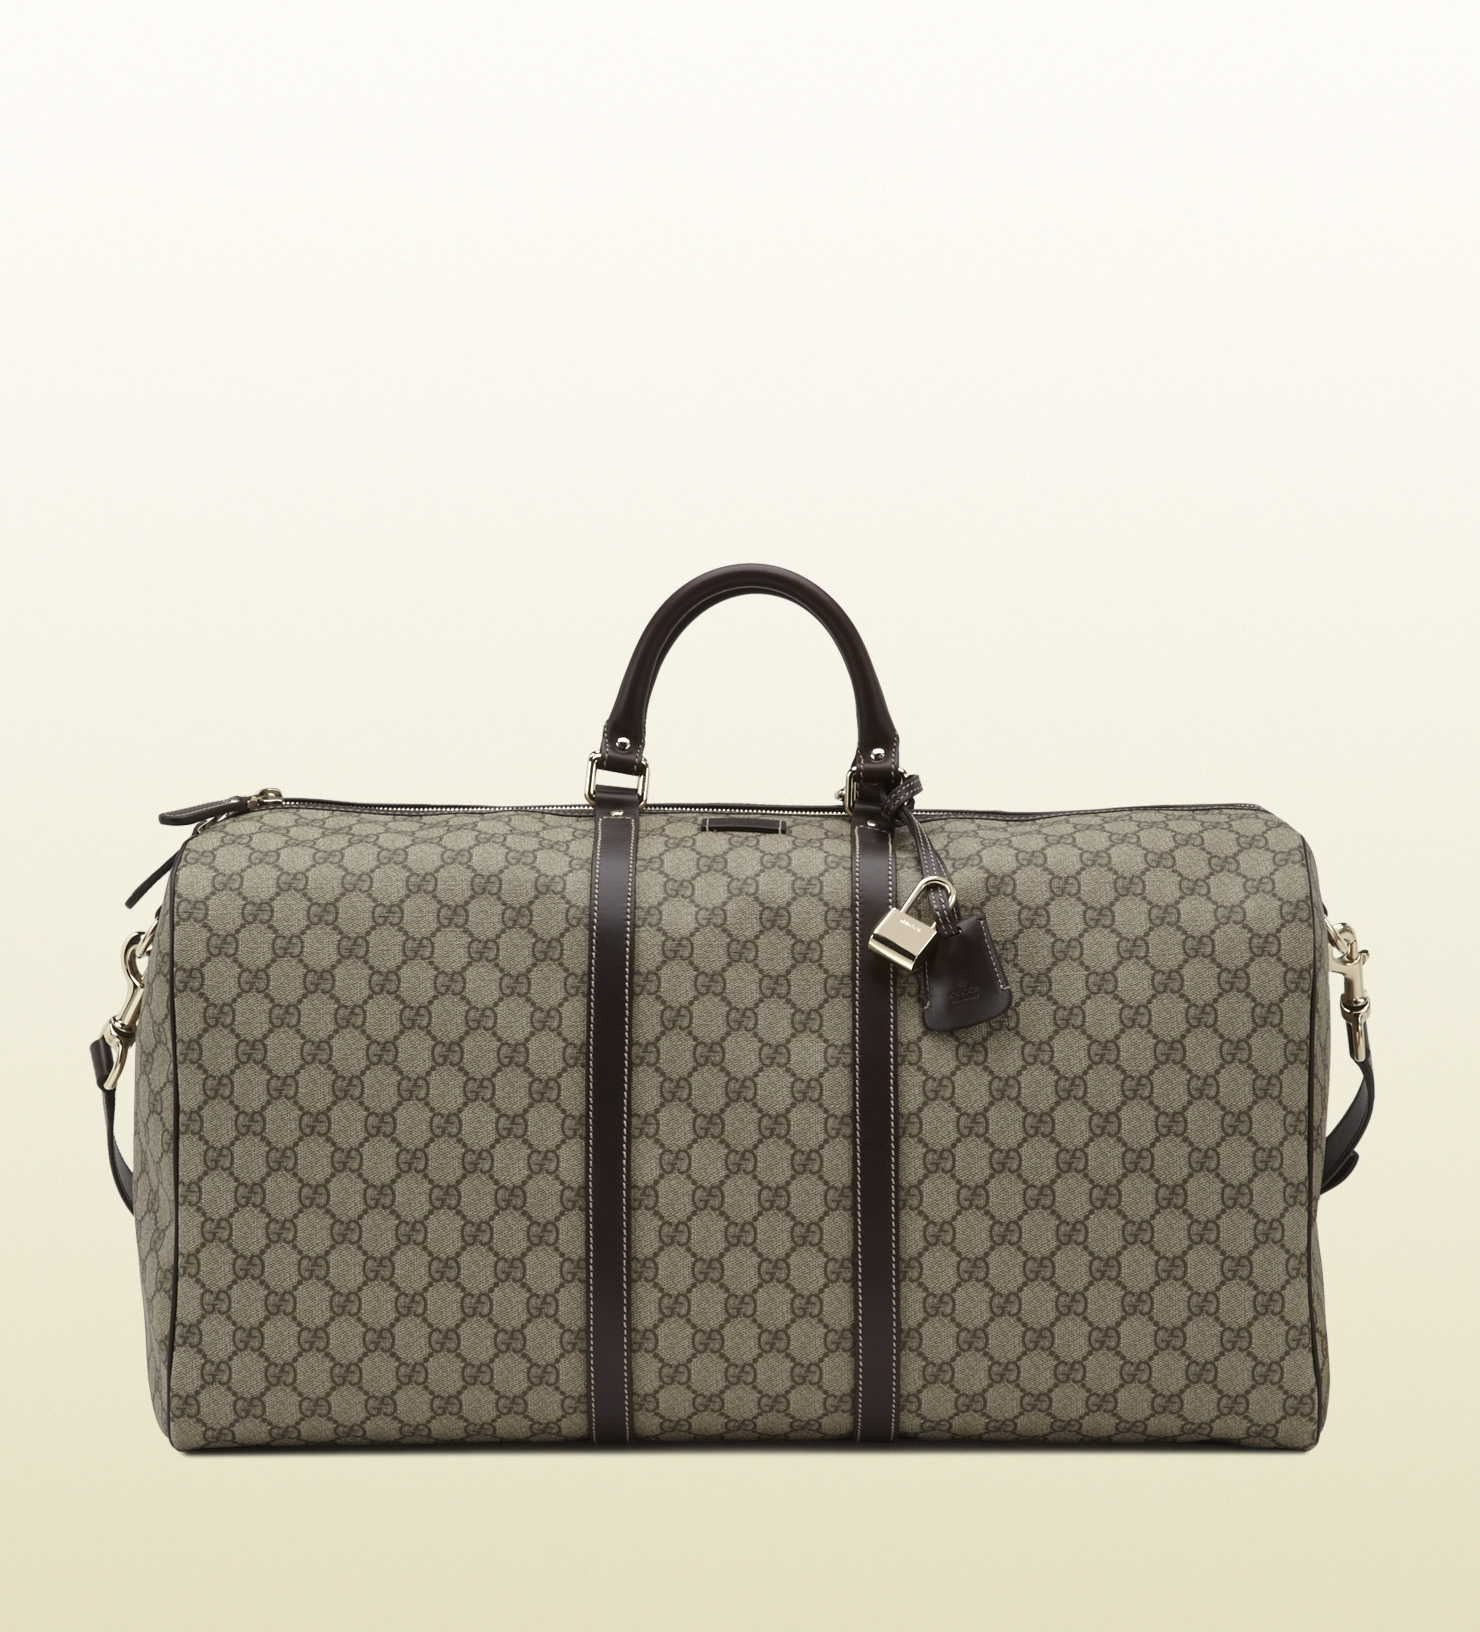 Gucci Large Carry On Duffle Bag In Brown For Men Lyst